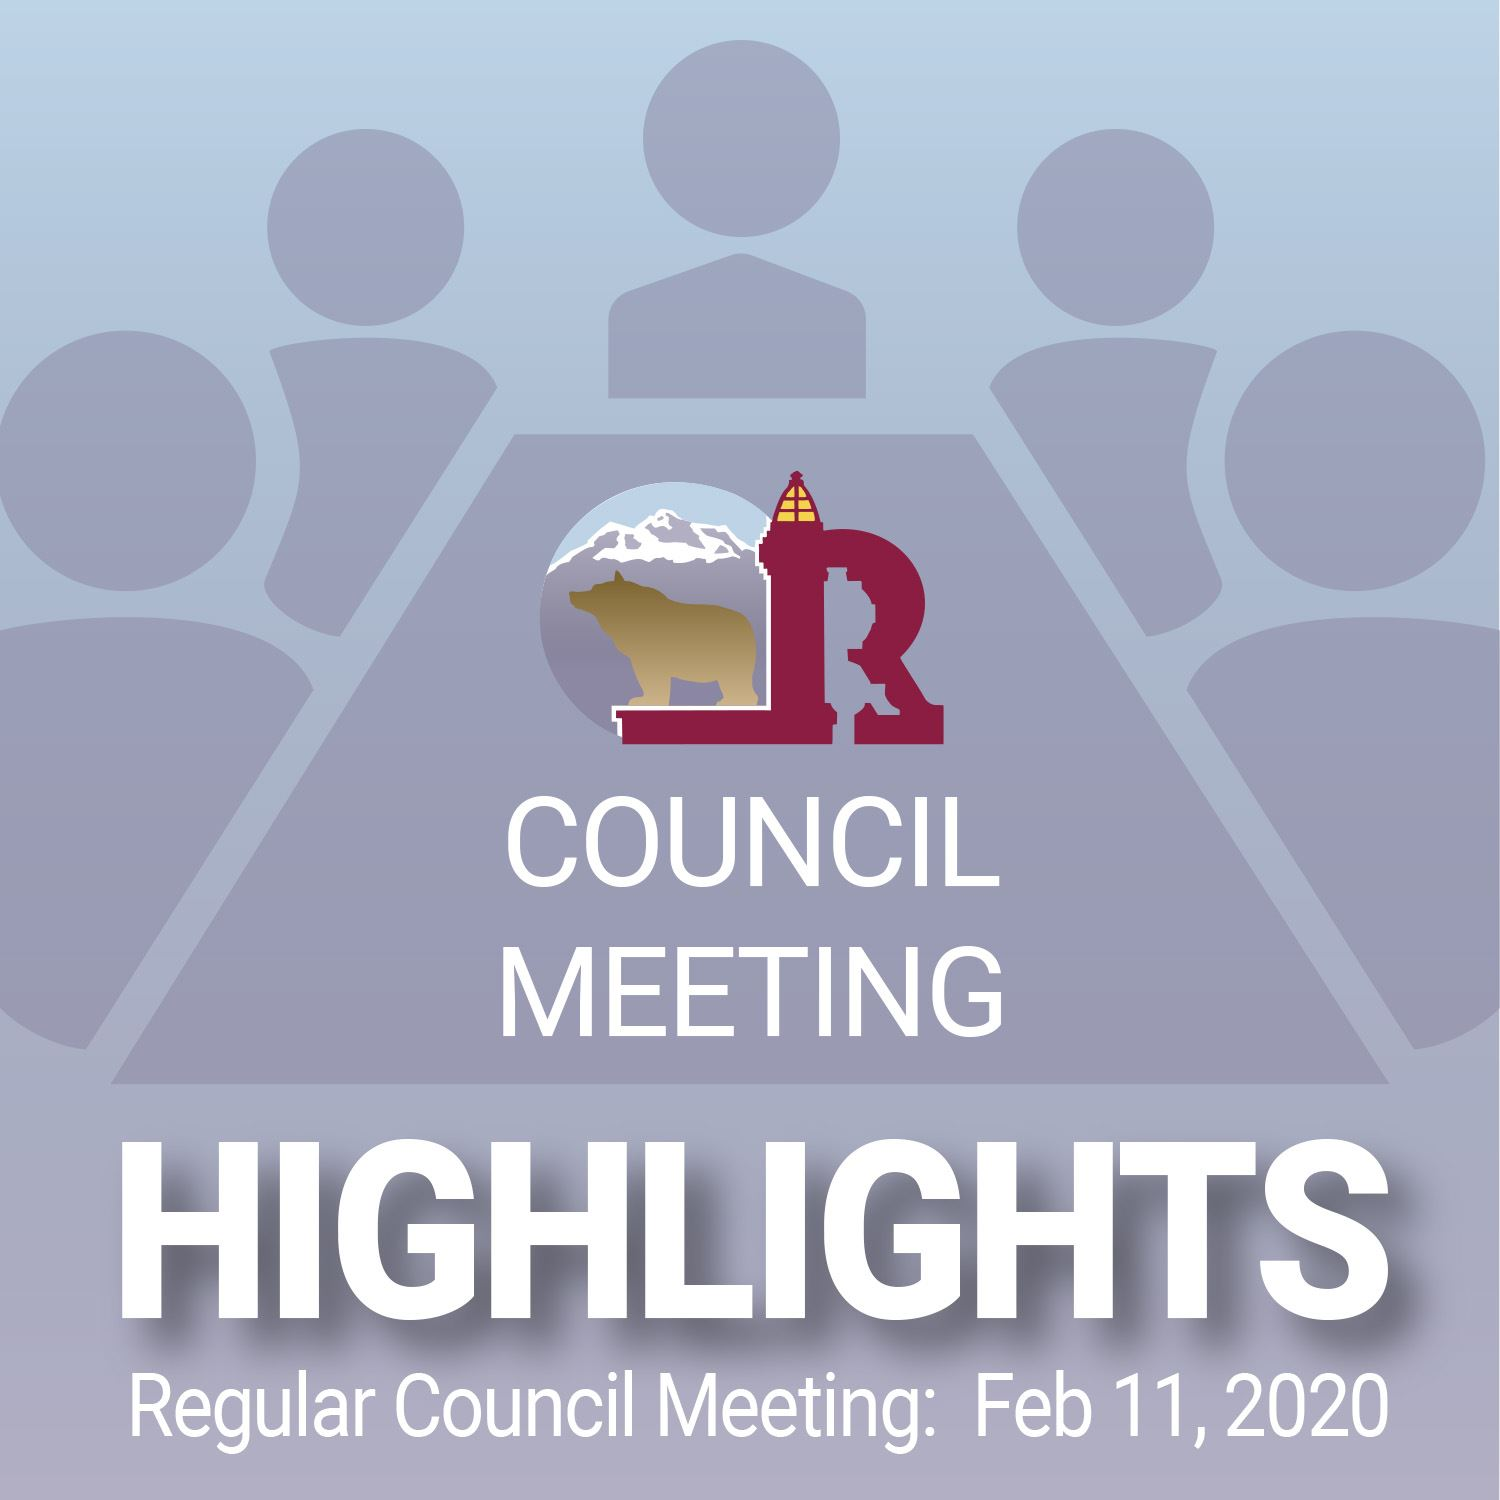 Council Highlights_Feb 11, 2020